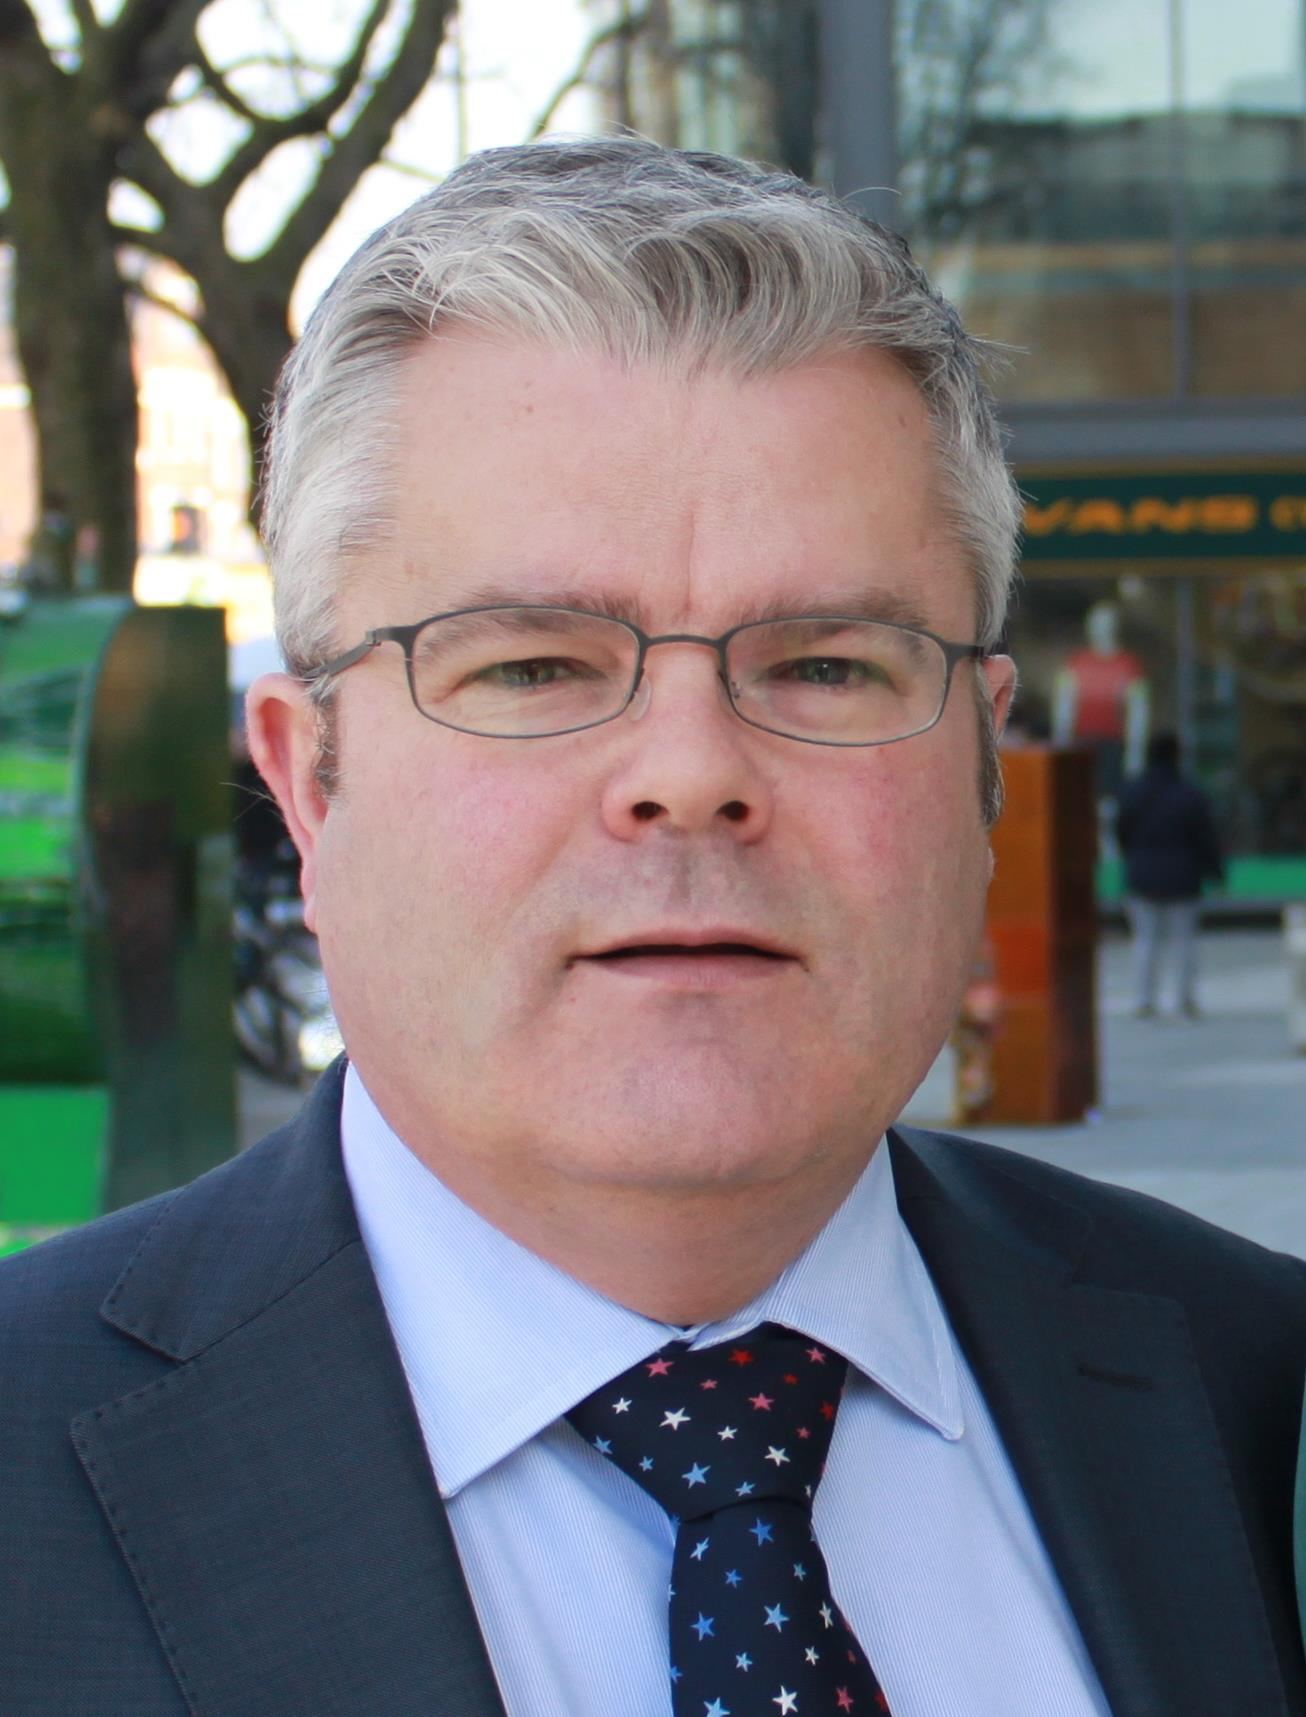 image for Cllr Paul McGlone